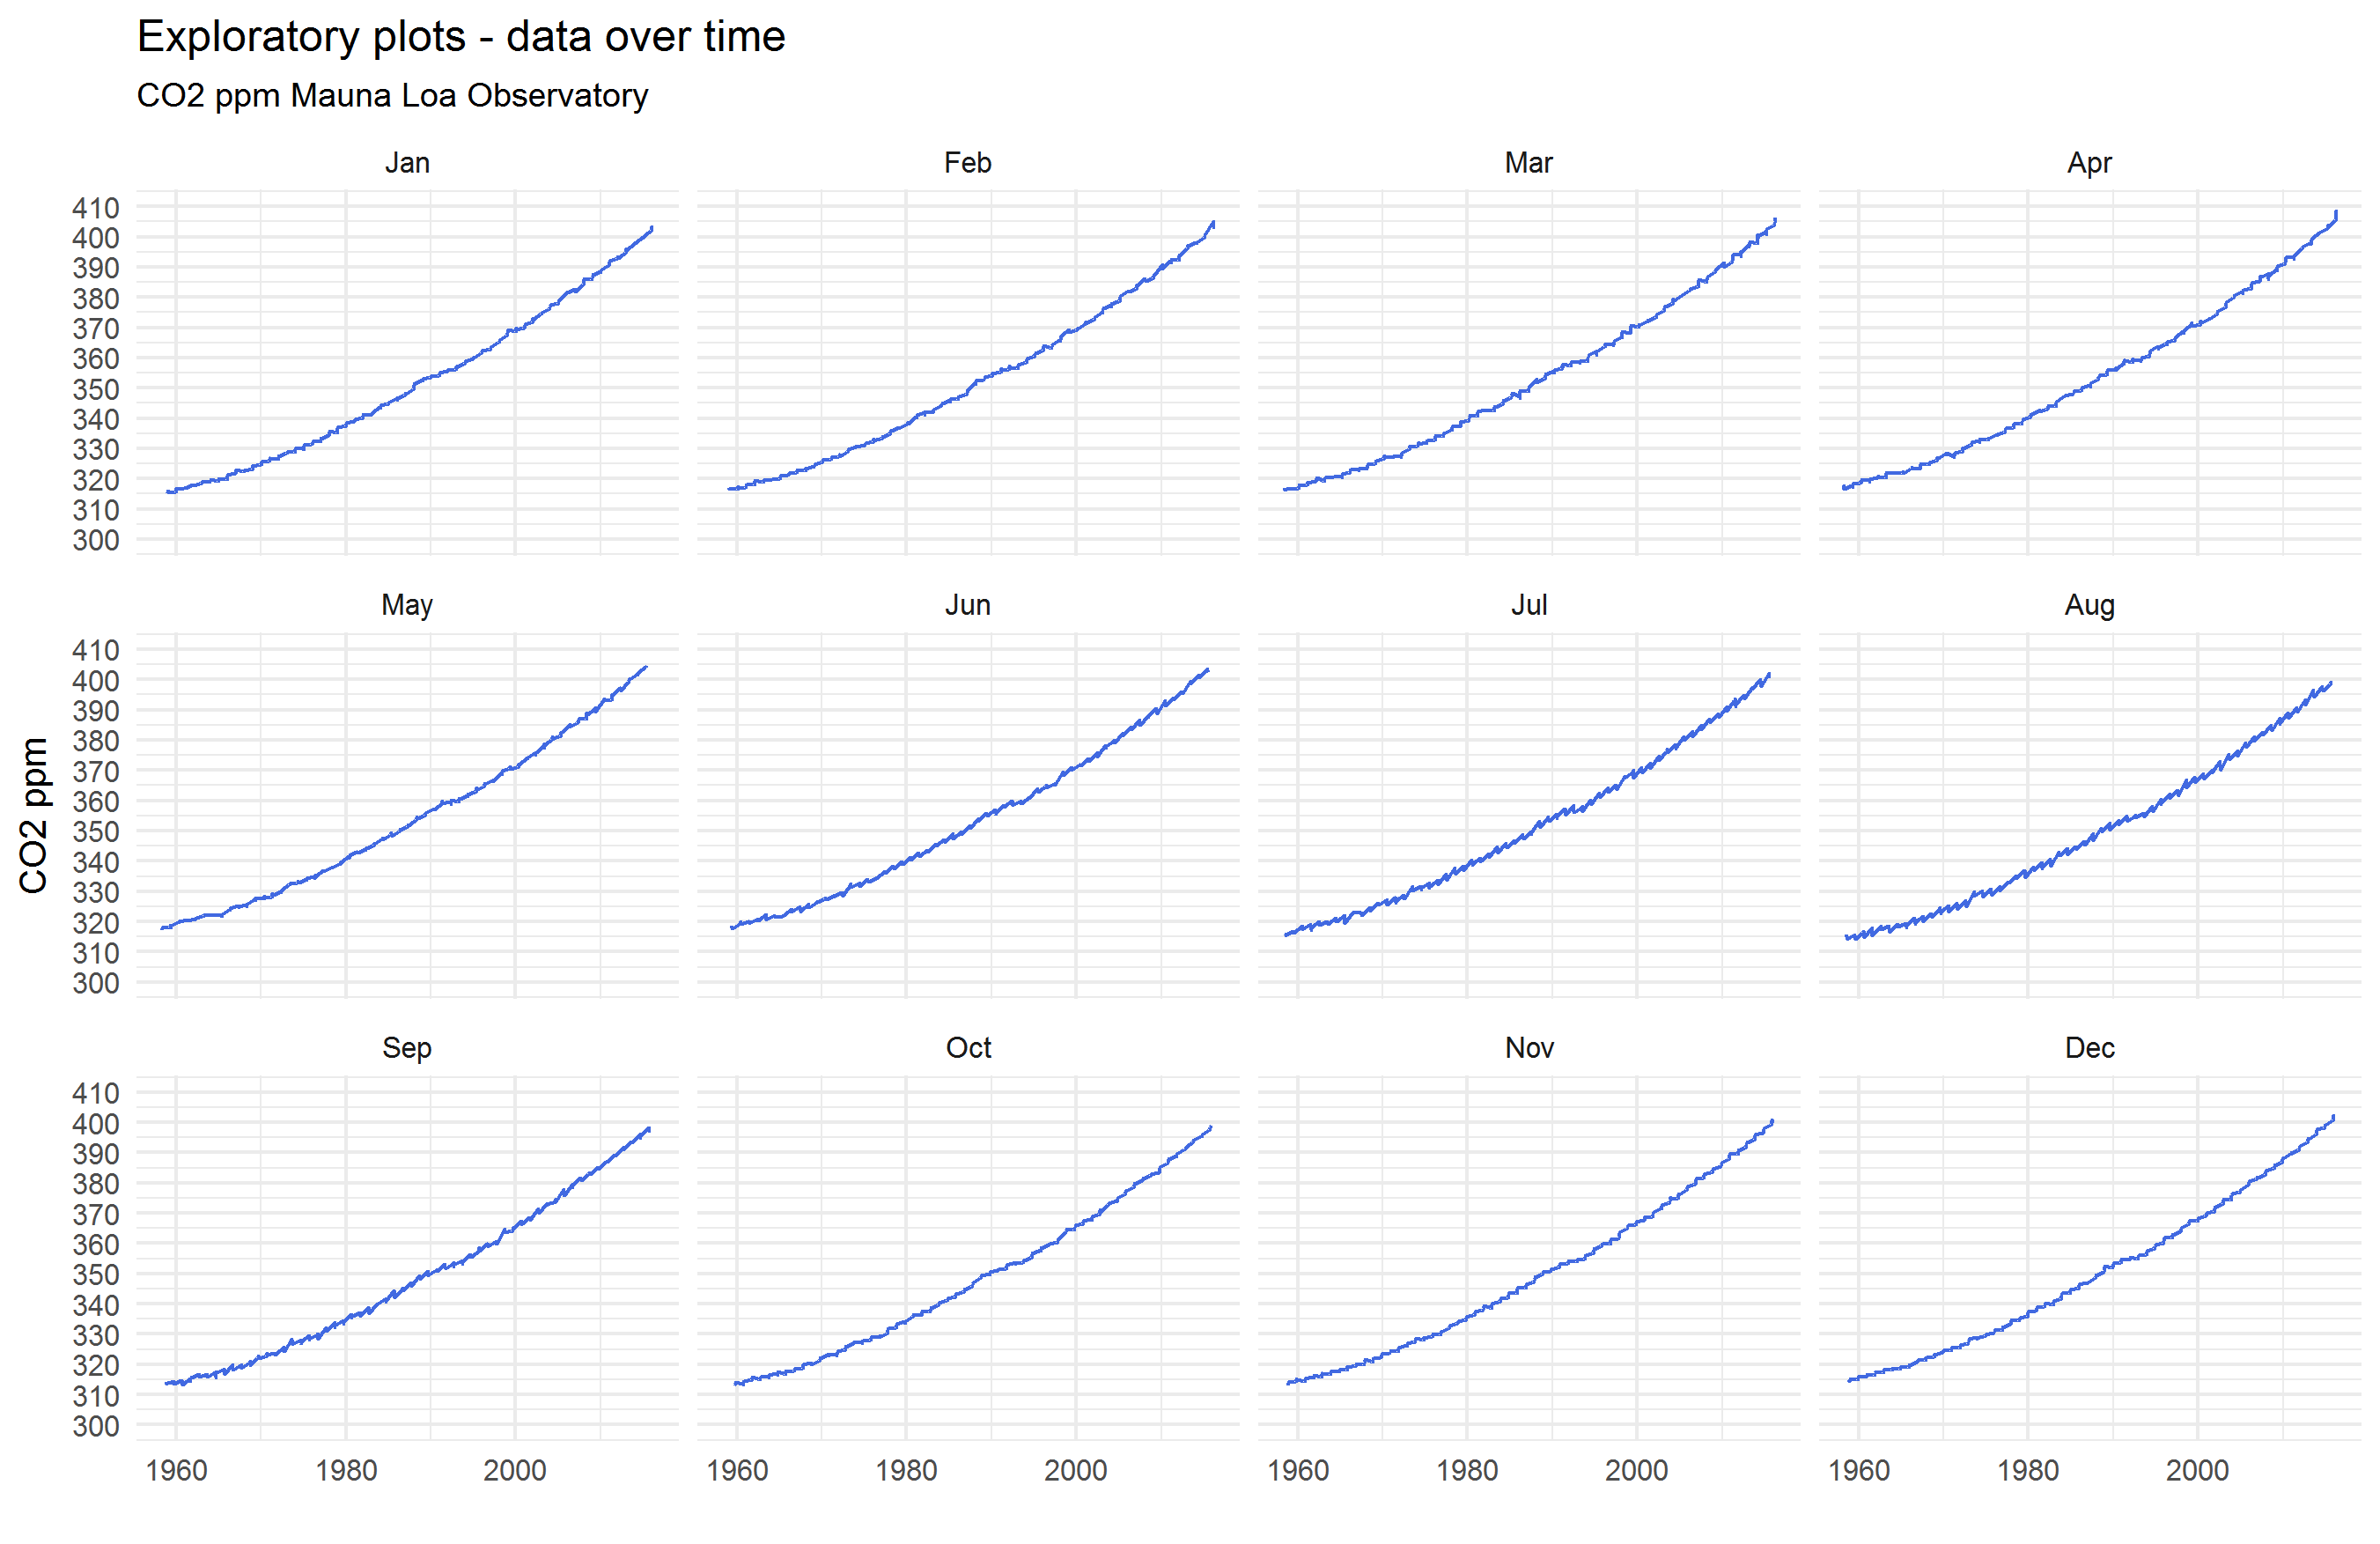 dataovertime.png